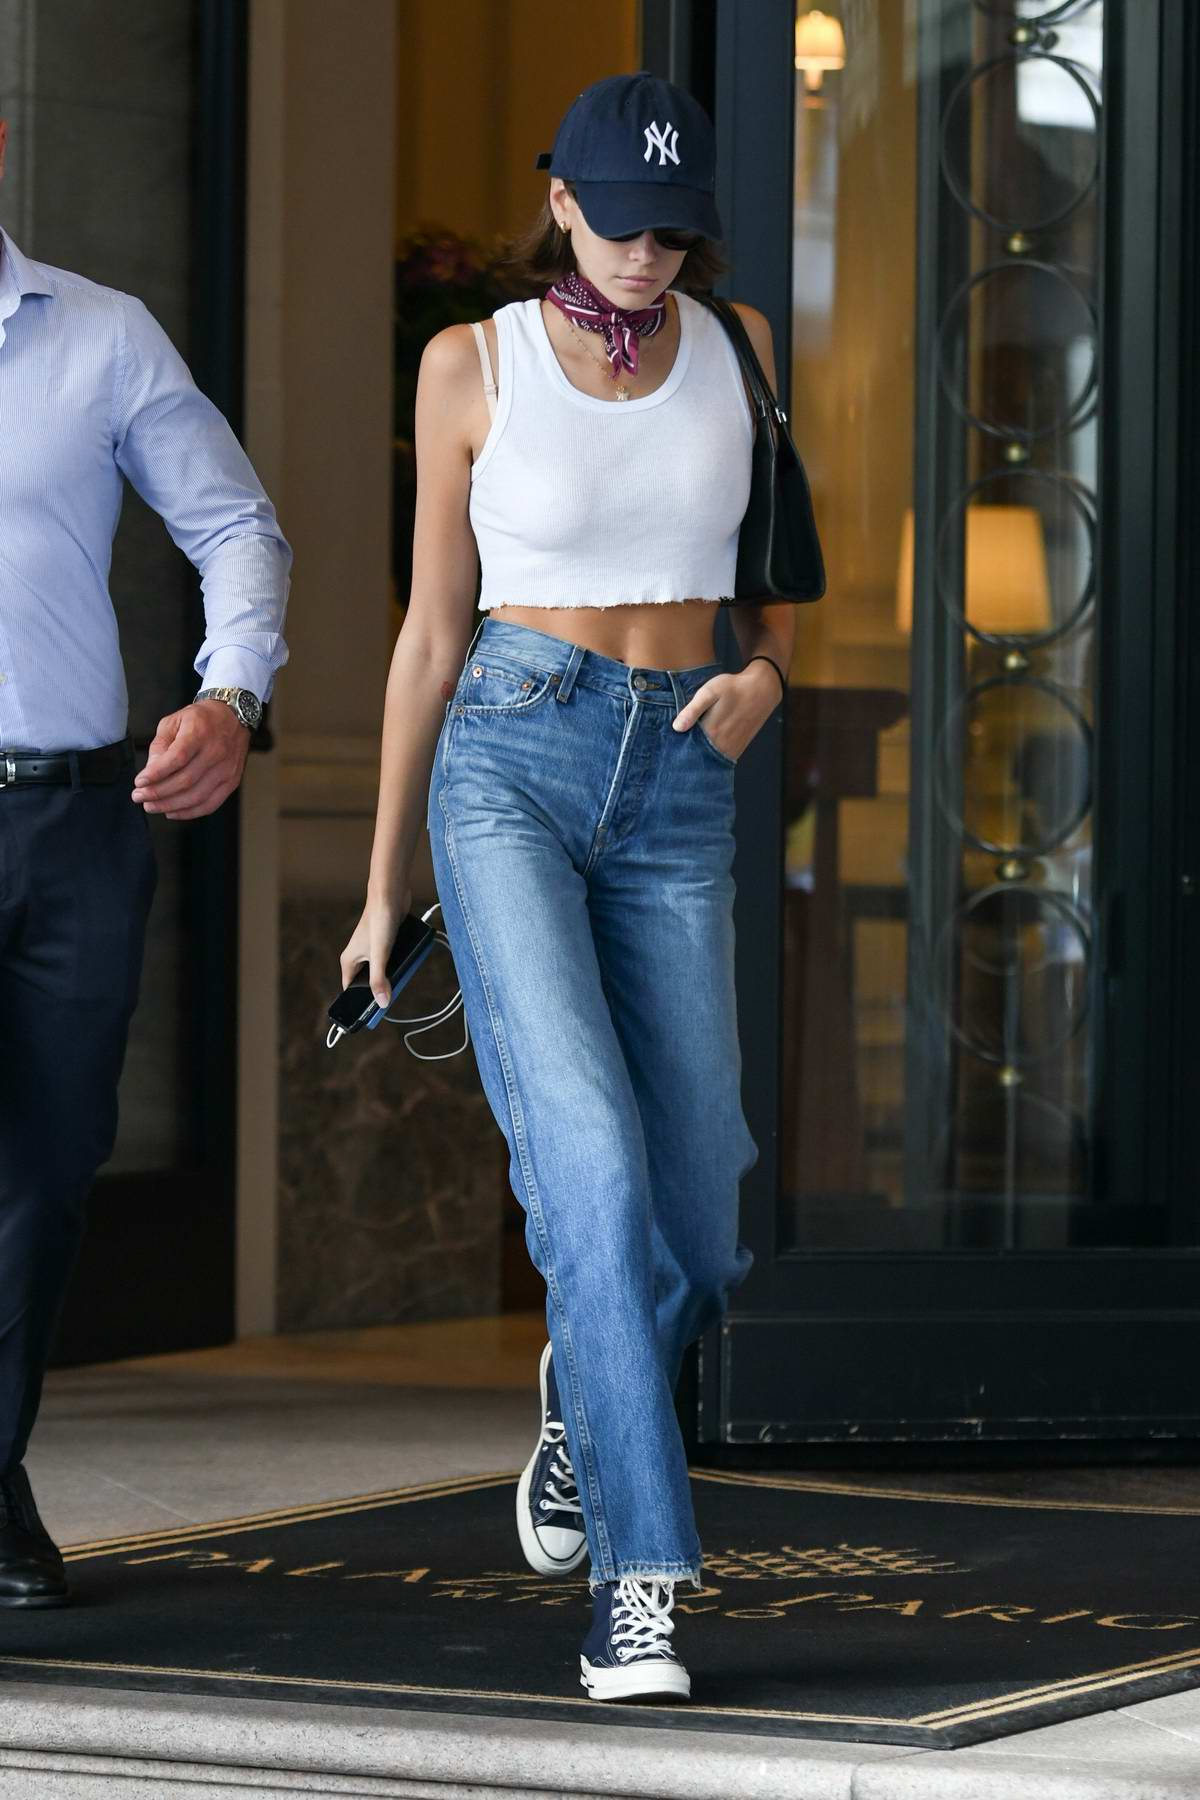 Kaia Gerber wears a cropped white tank top with jeans and Converse while stepping out during Milan Fashion Week in Milan, Italy